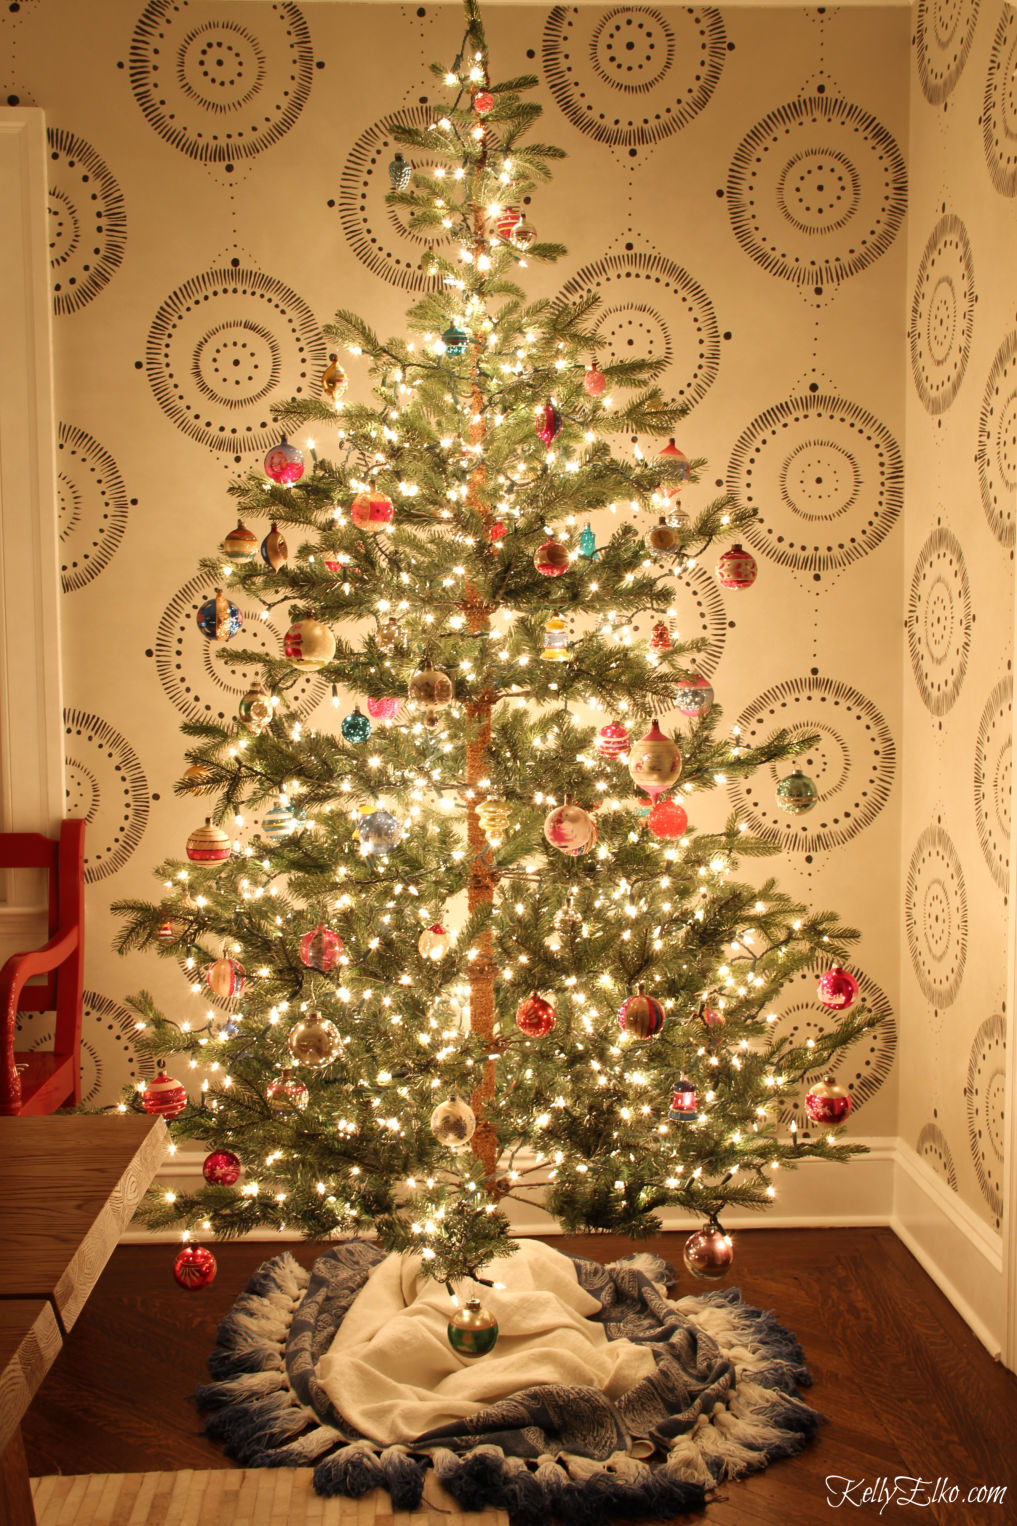 Don't miss this Christmas night tour - I love this twinkling tree filled with